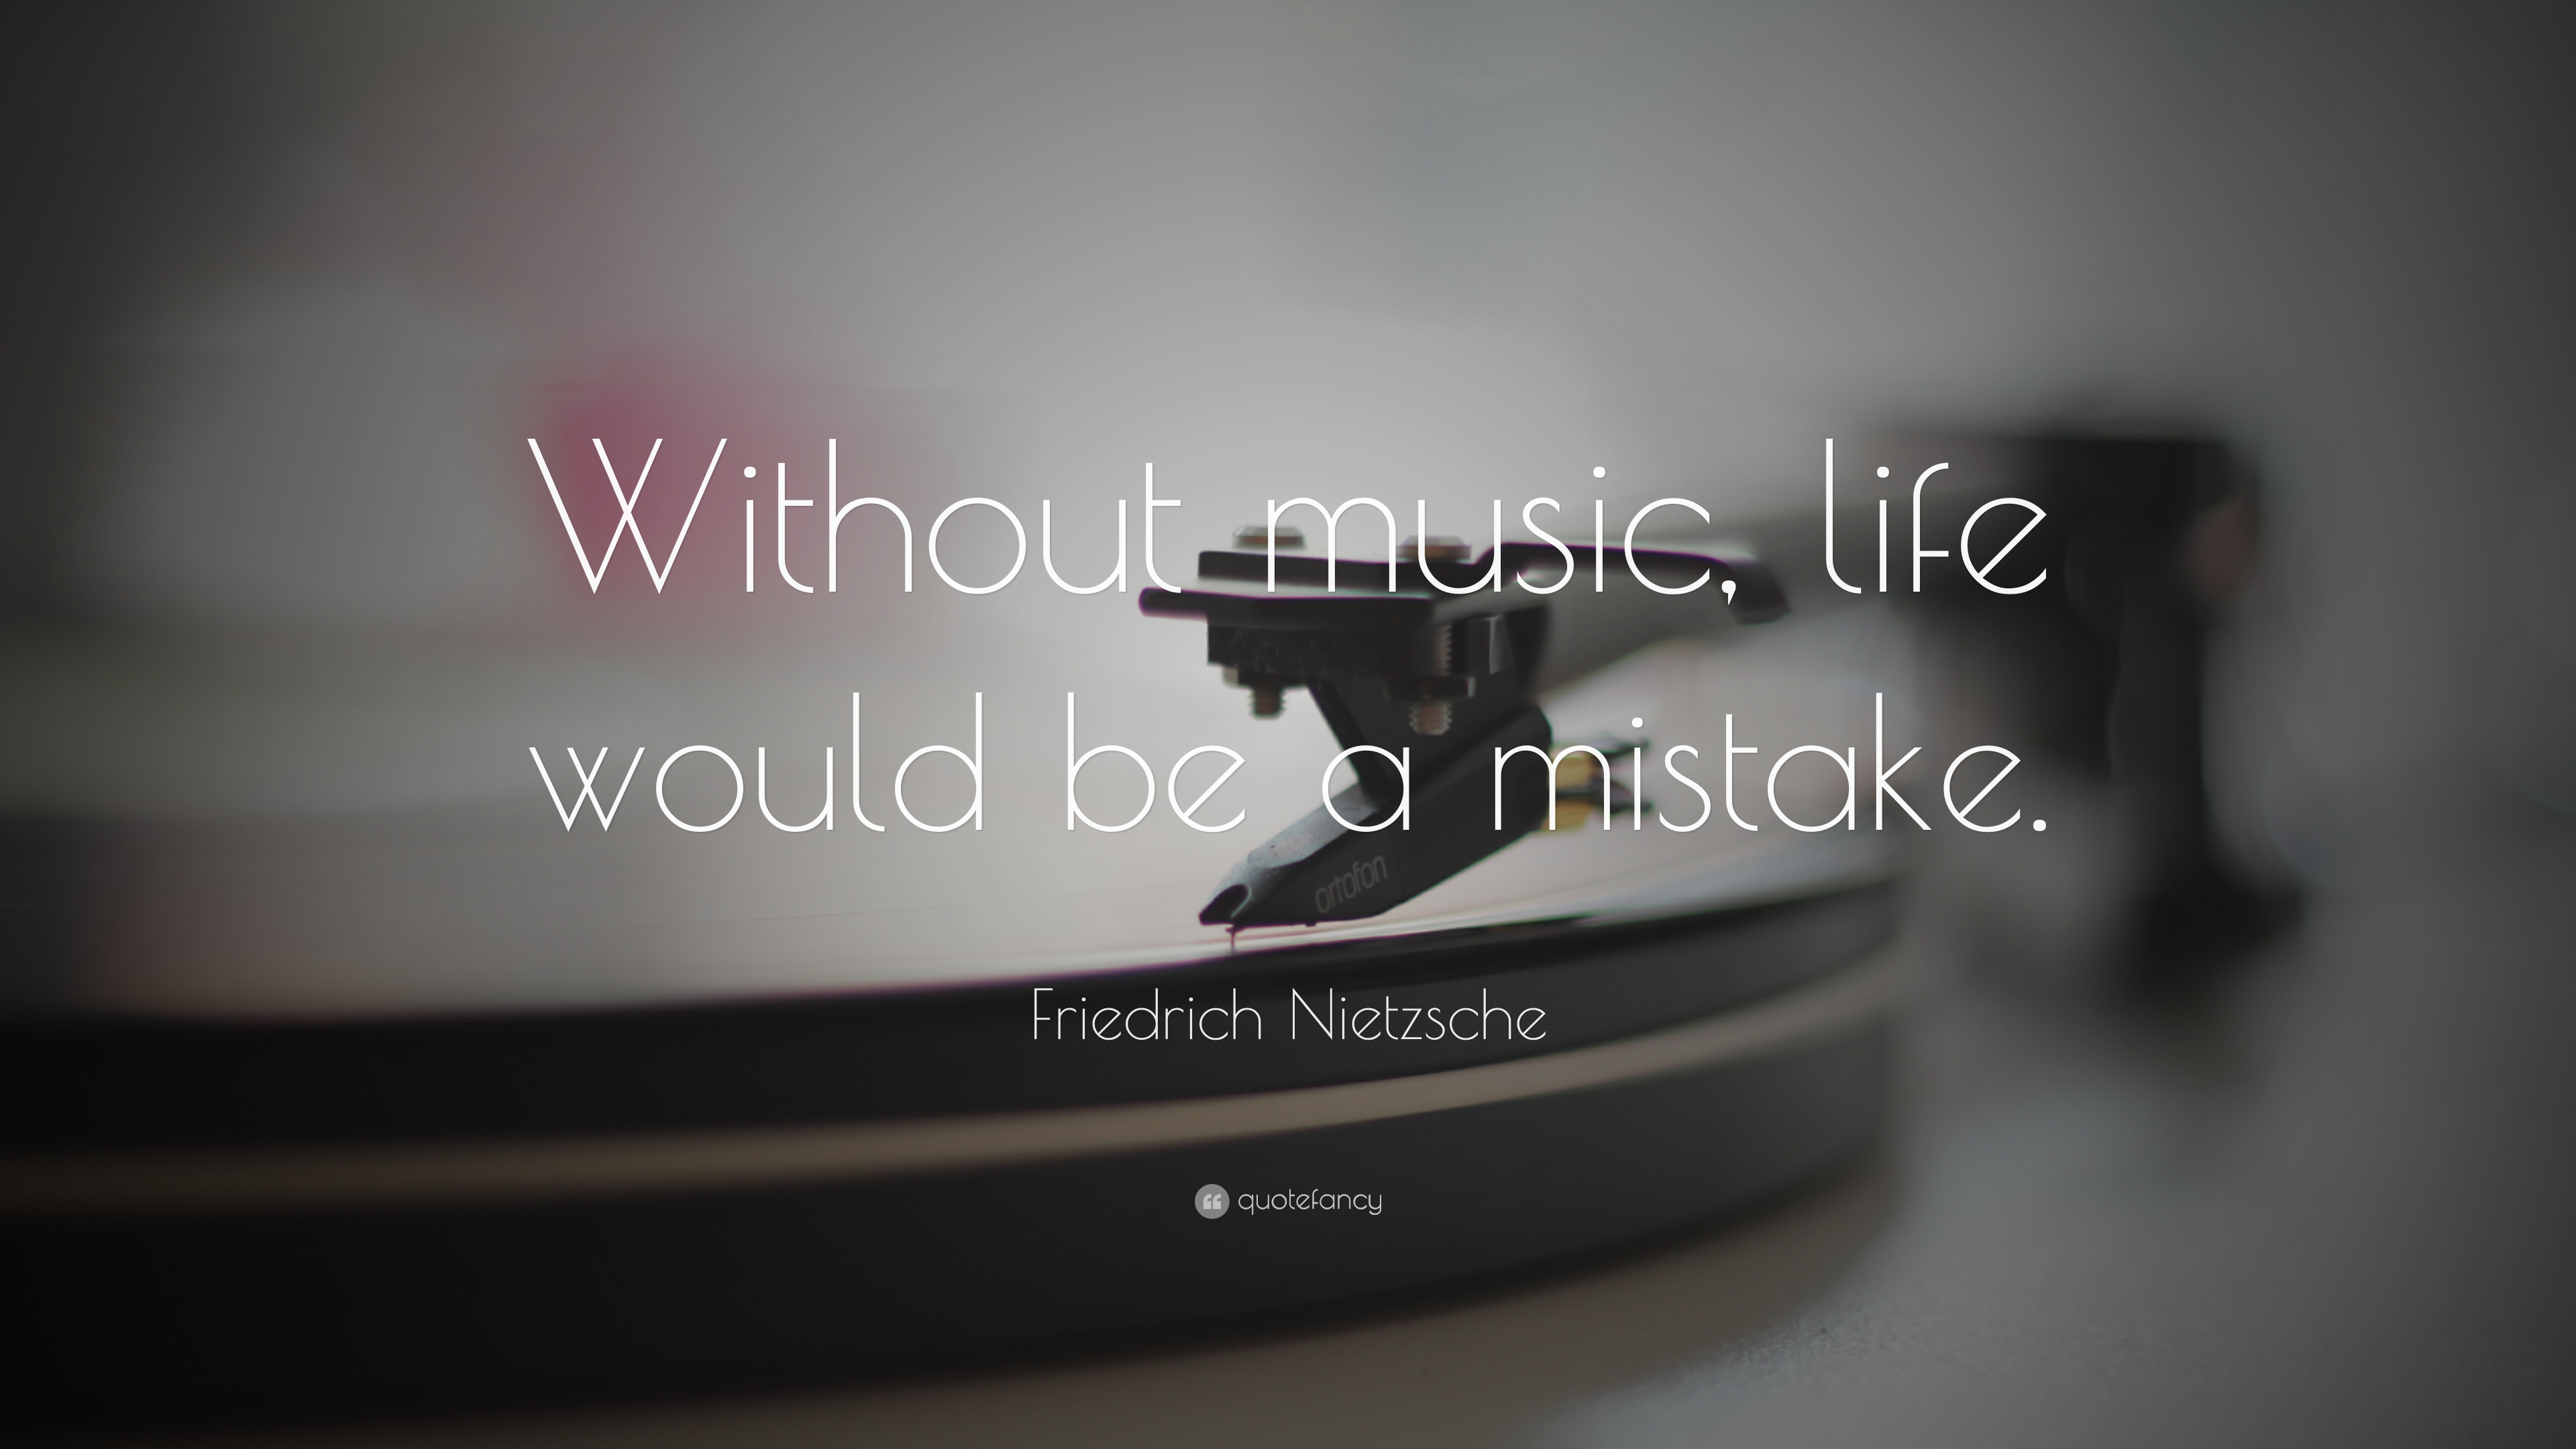 Image result for leo tolstoy life without music would be a mistake